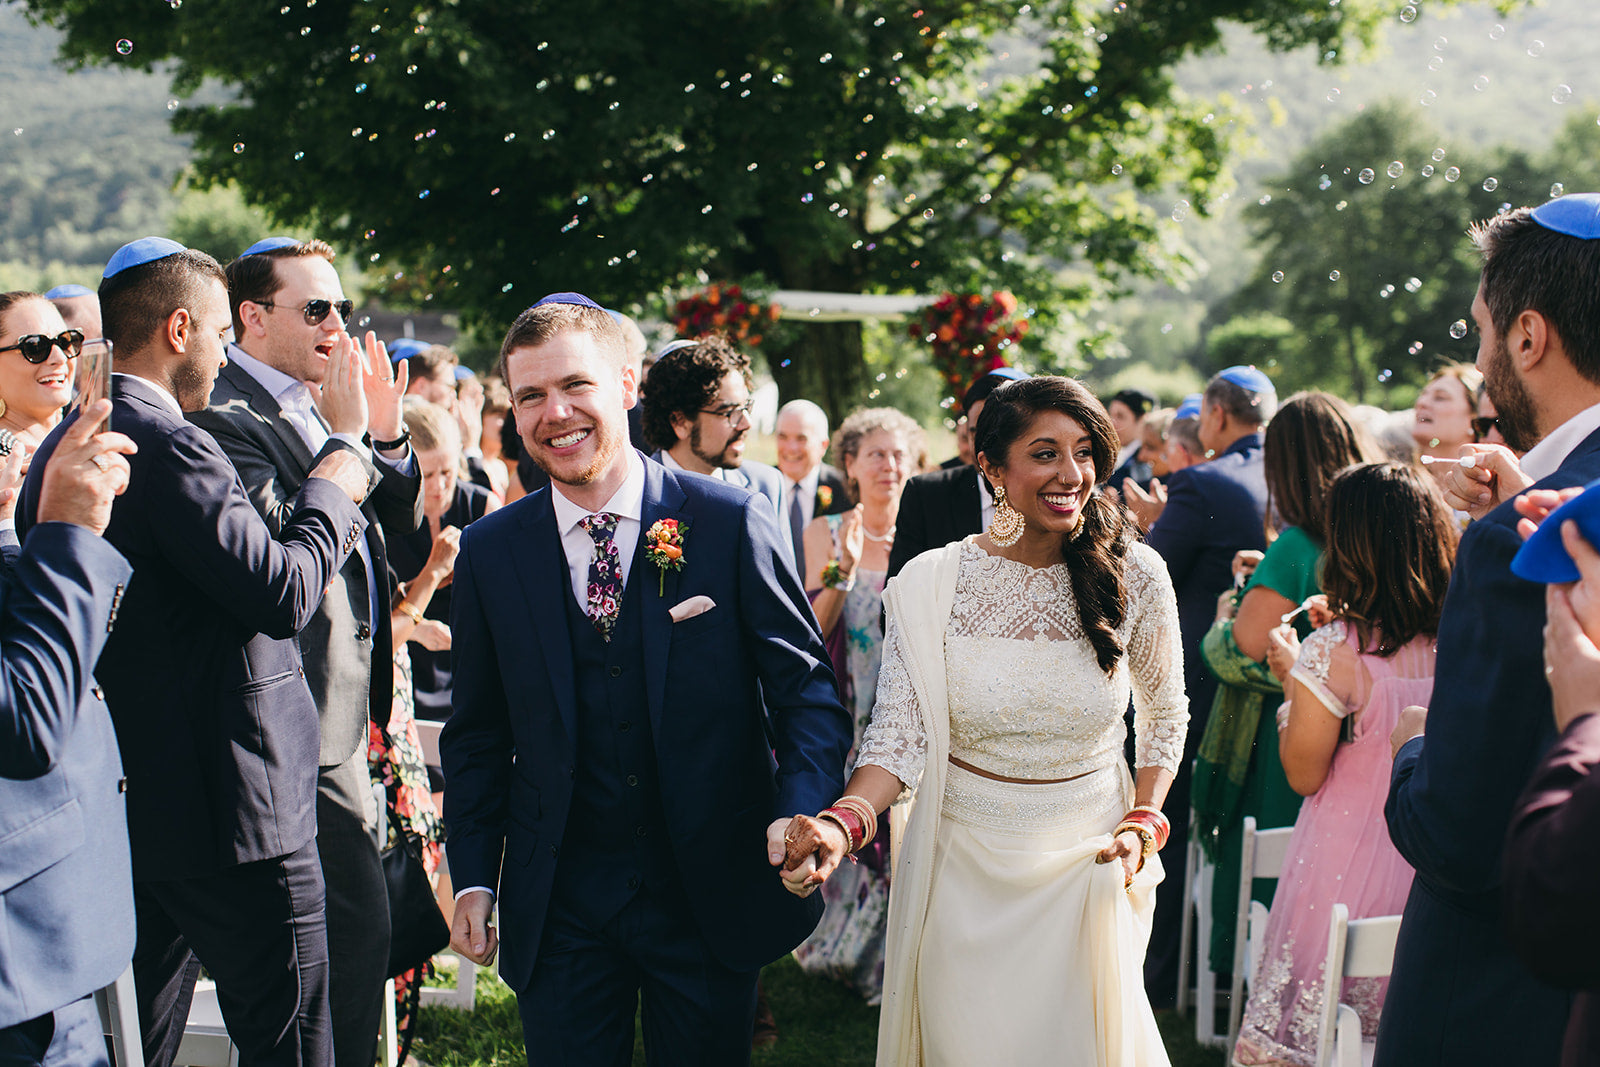 KYNAH BRIDE | Press Feature in The CUT A Sikh-Jewish Wedding That Ended in Fireworks